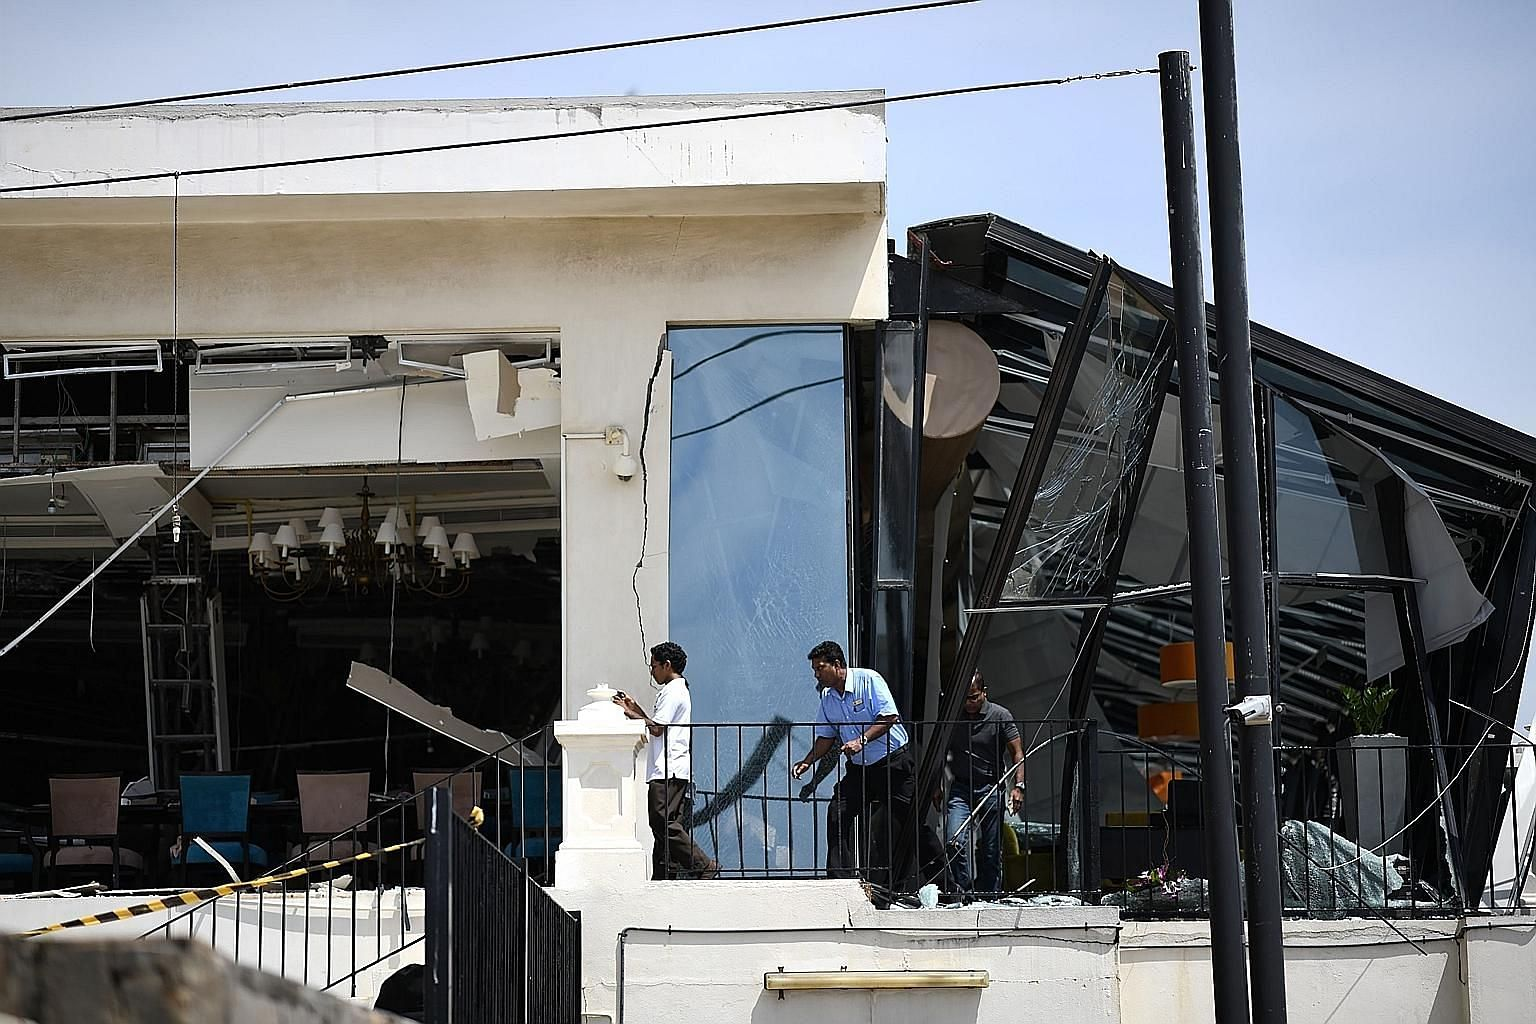 A damaged section of a restaurant at The Kingsbury Hotel in Colombo yesterday. The Sri Lankan government is facing criticism after acknowledging that it did not act on earlier warnings of possible suicide attacks.